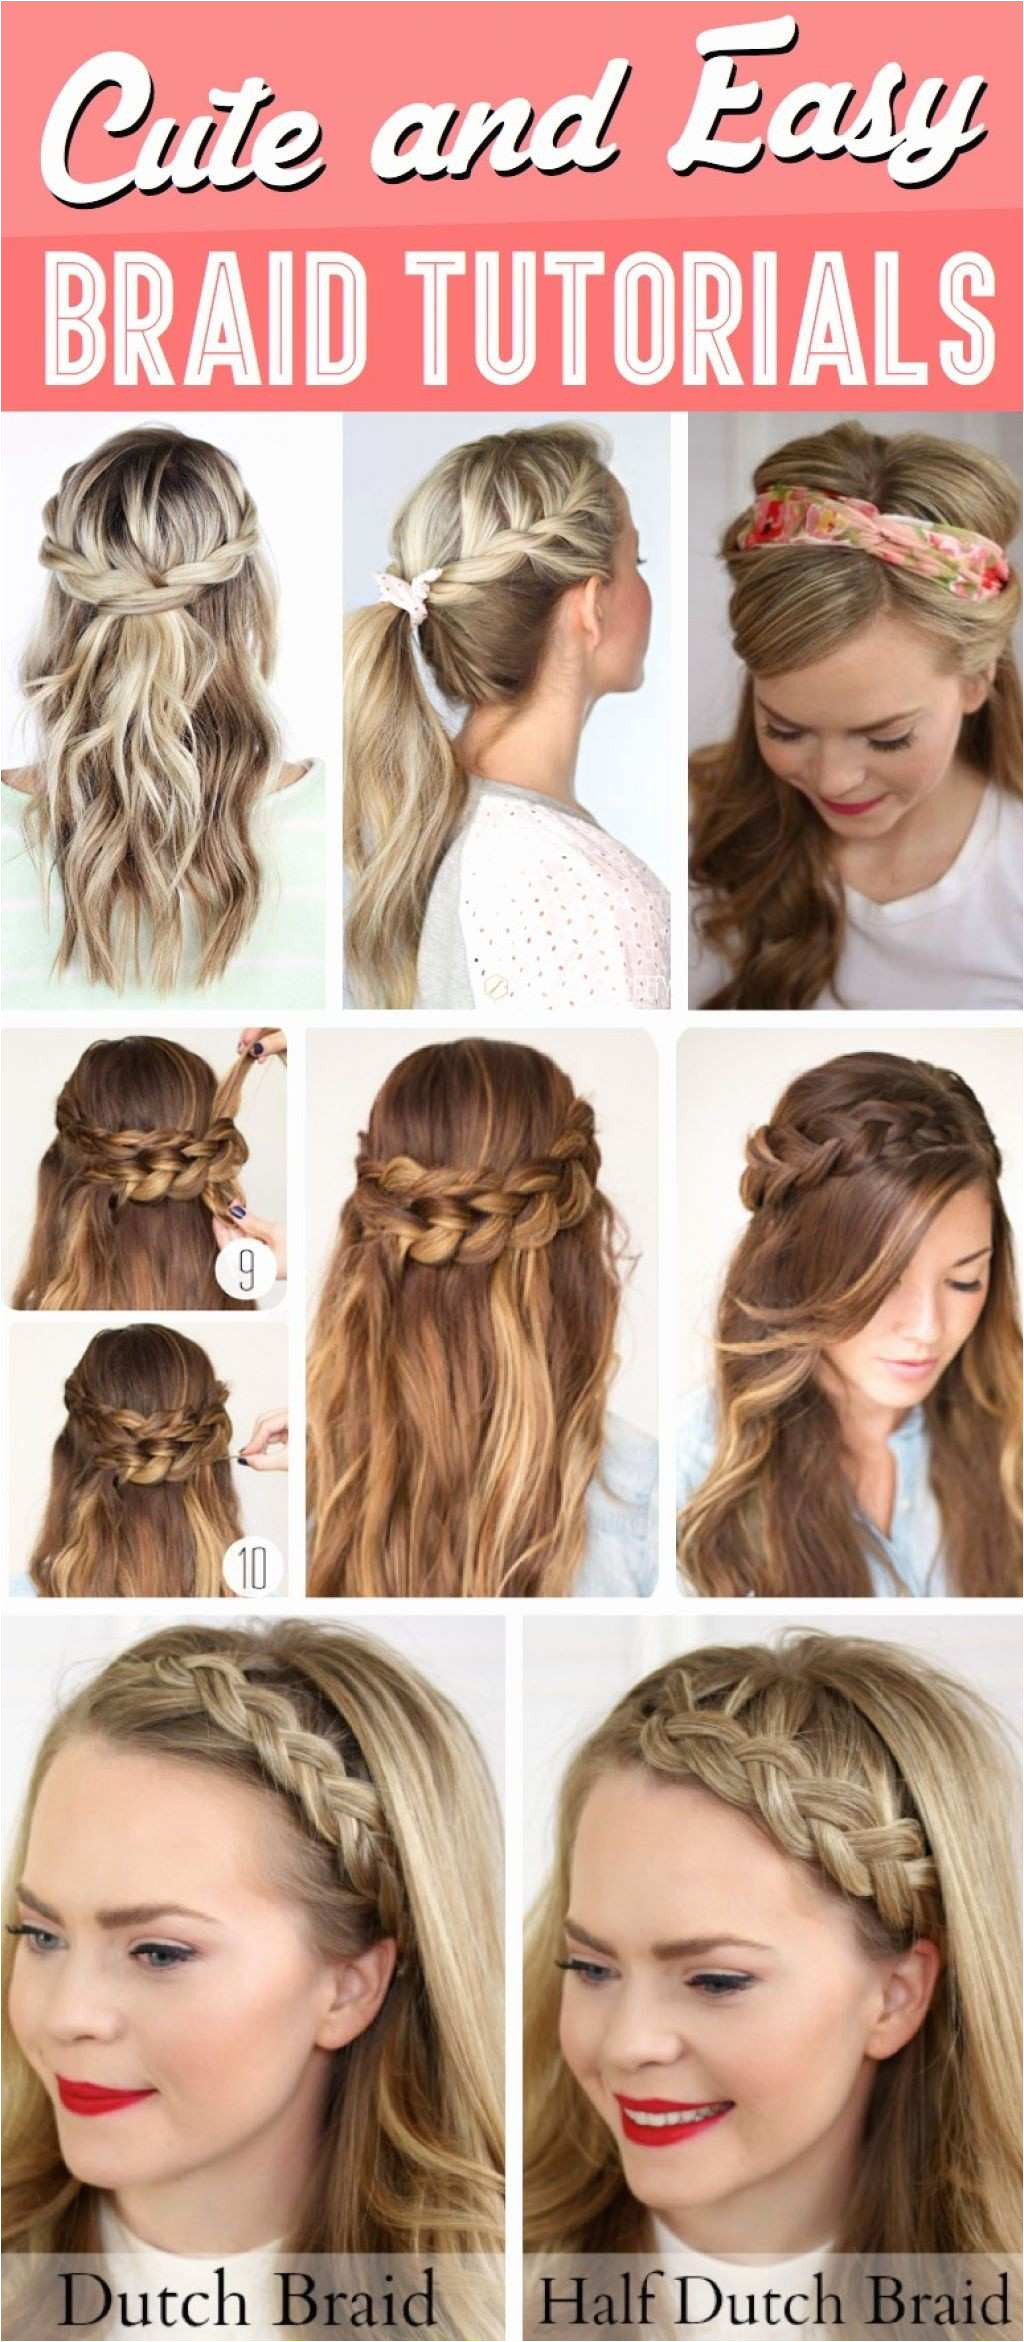 Diy Hairstyles for Girls New S Cute Easy Hairstyles for School – Hair Ideas Cut and